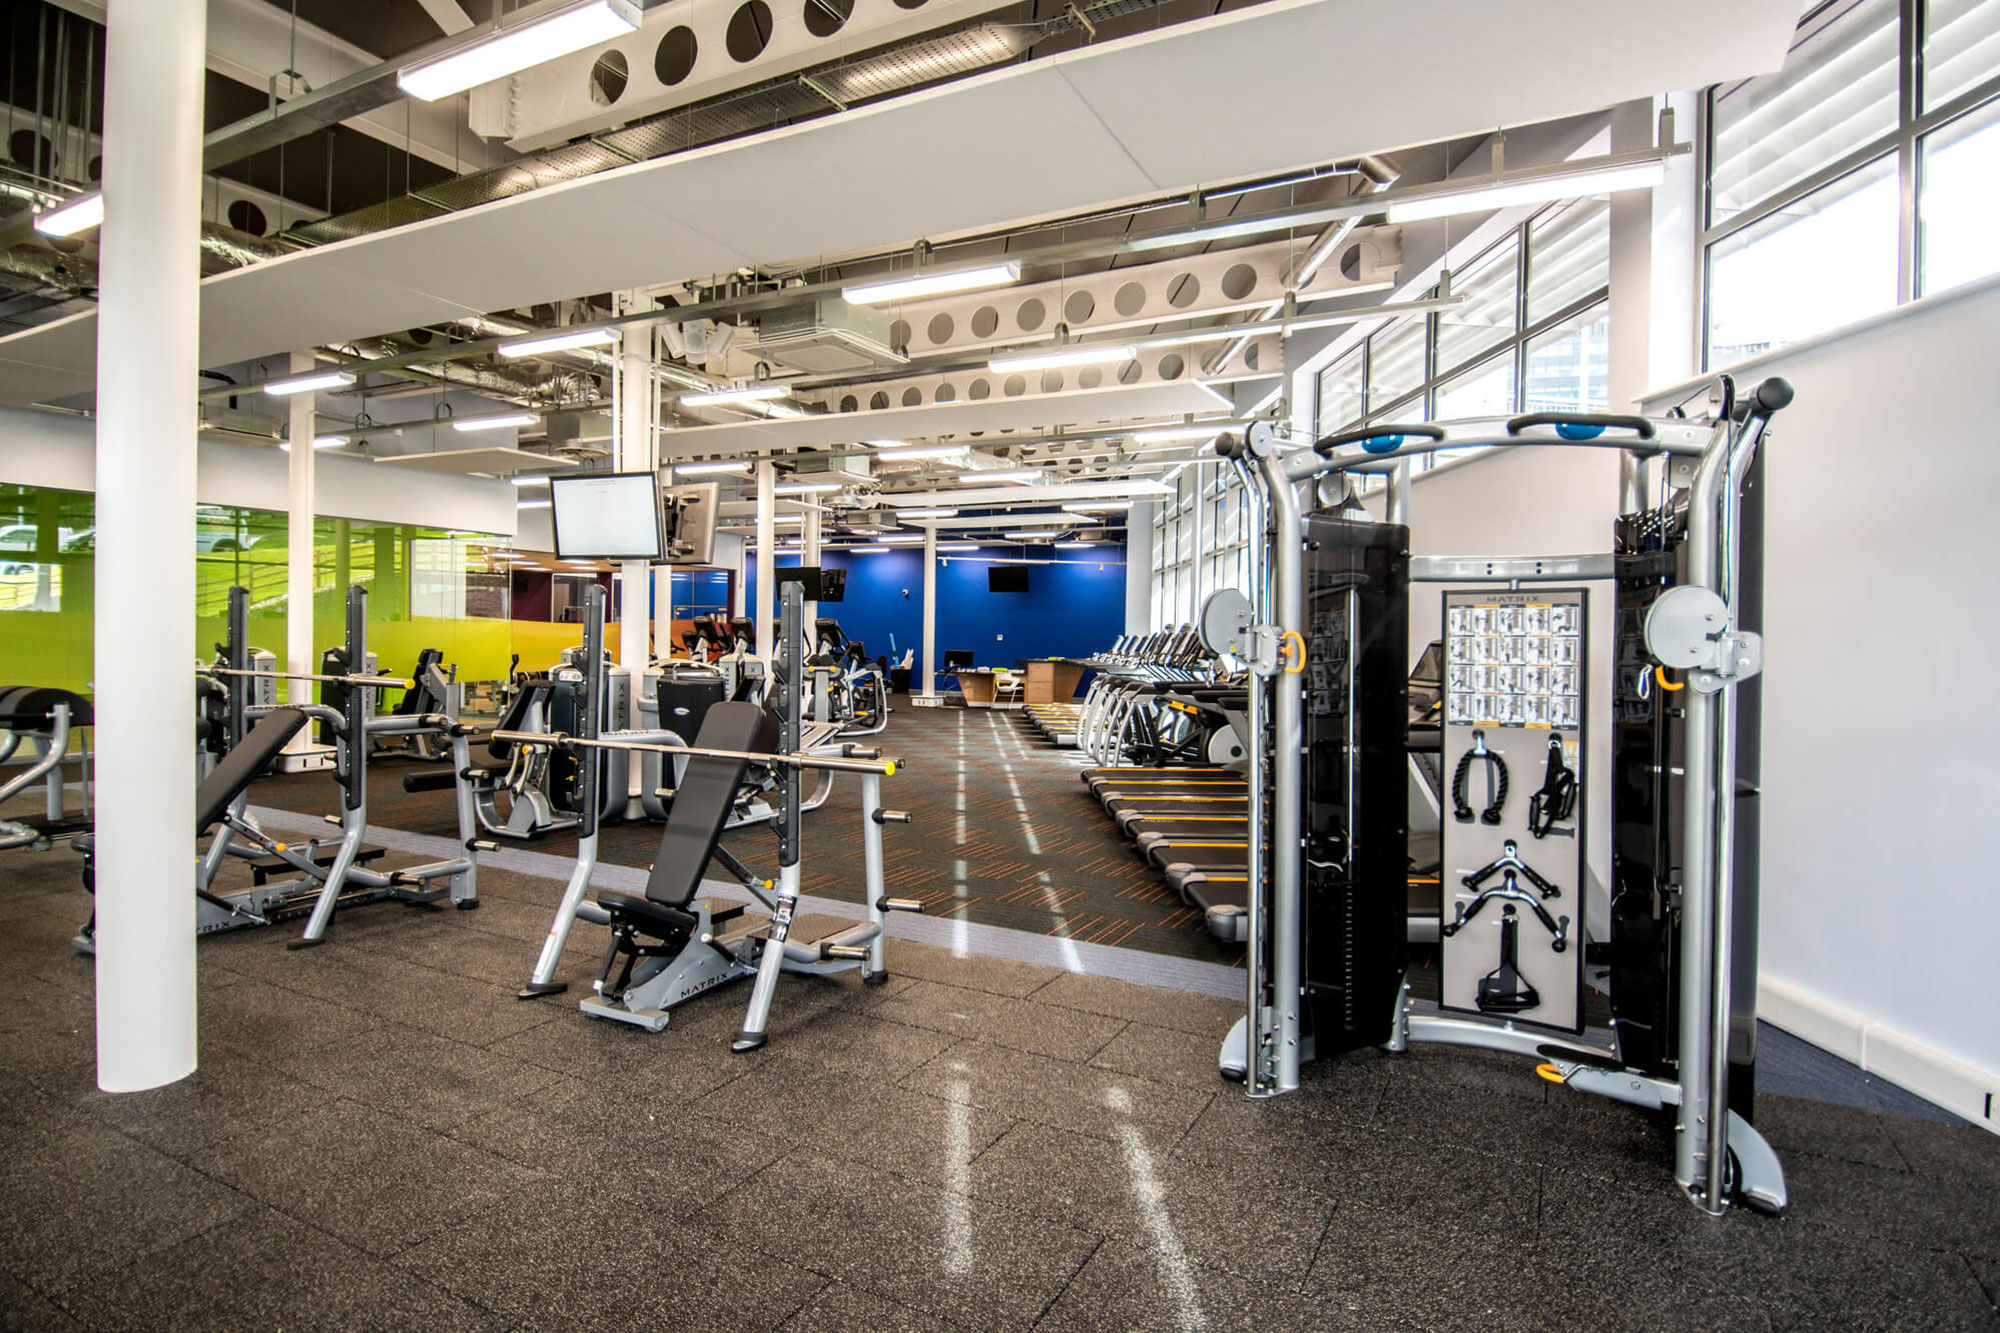 Interior views of the Fitness Suite at the Sports Centre